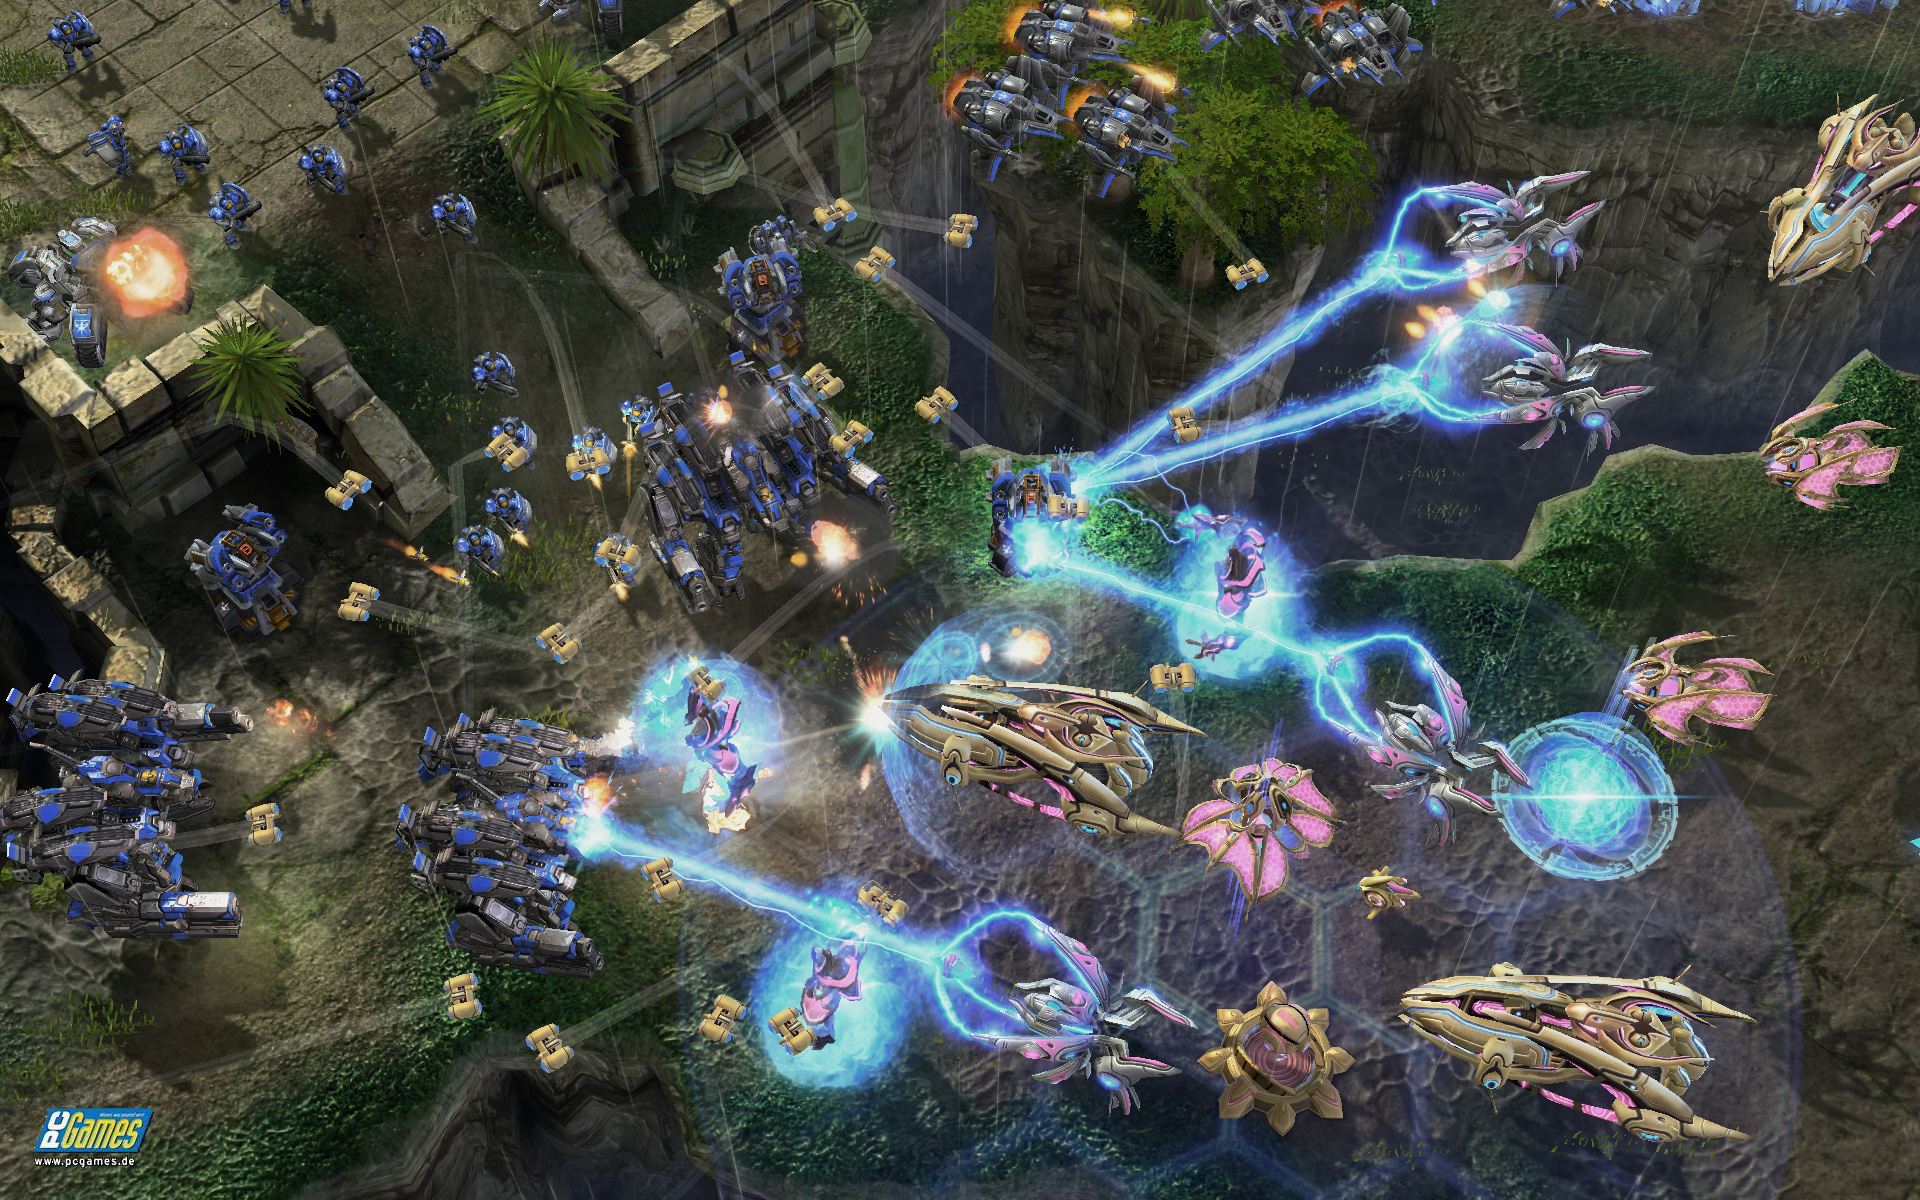 Starcraft 2: Wings of Liberty - large combats with many units and